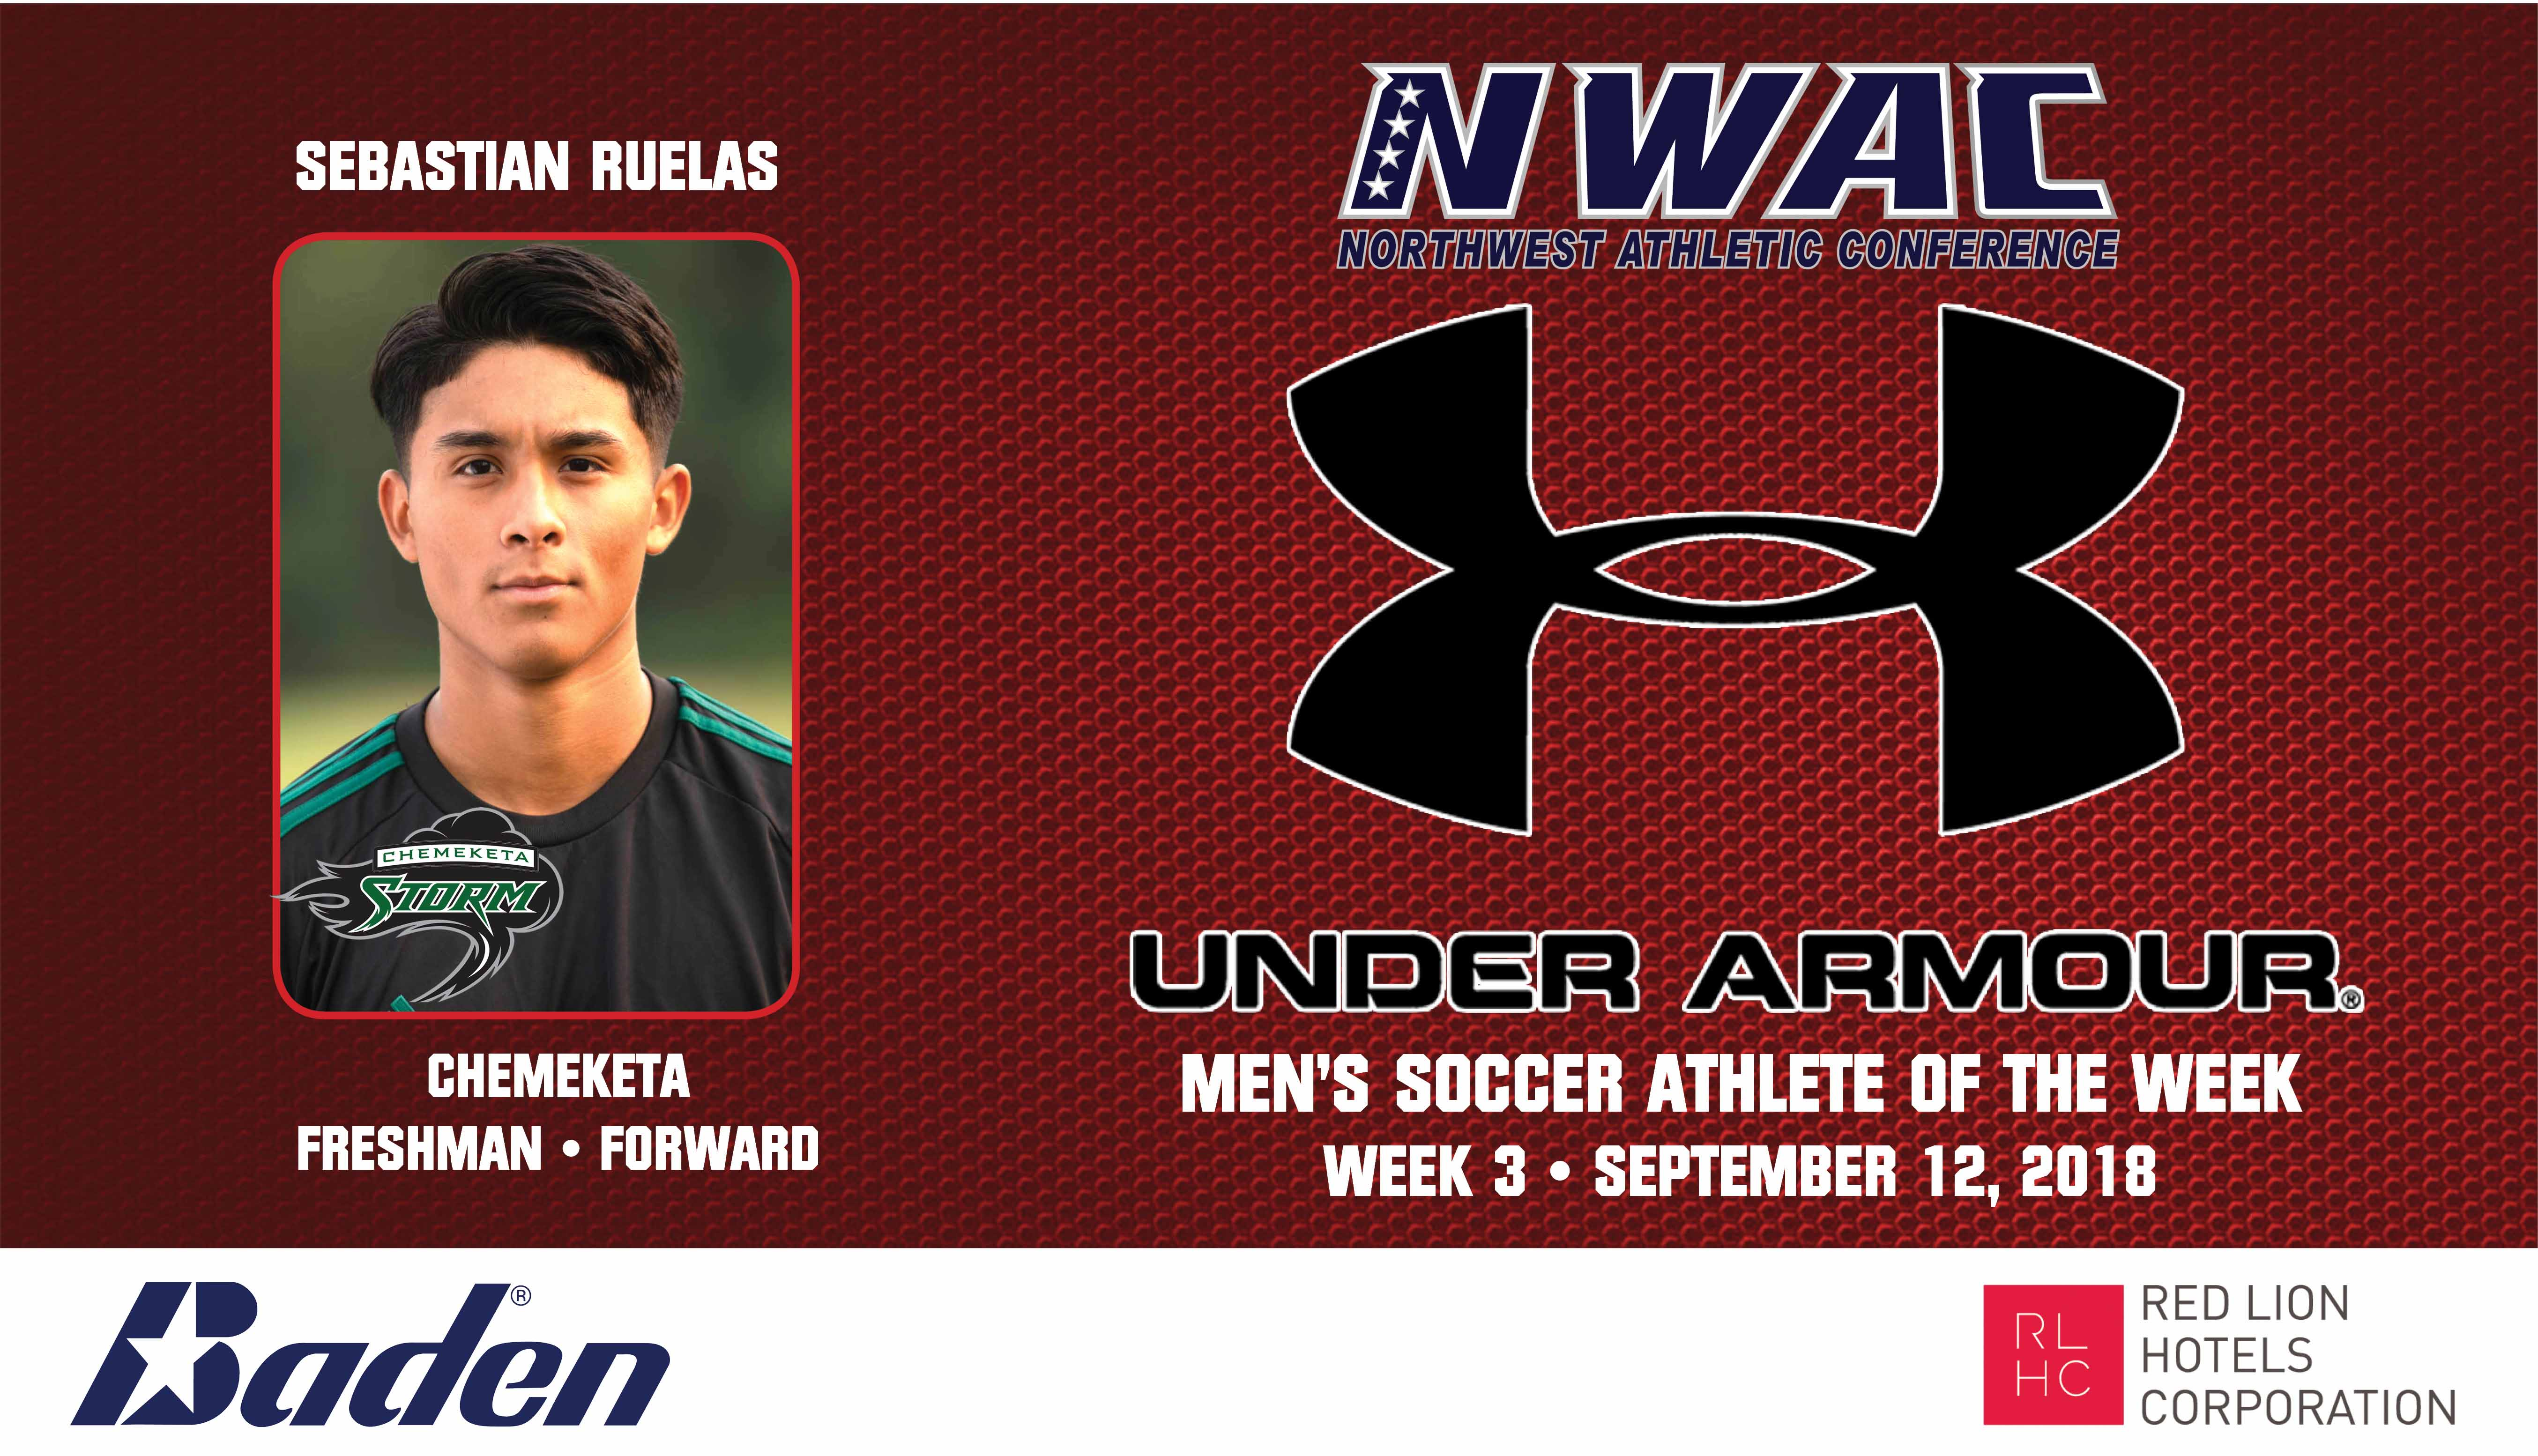 Sebastian Ruelas Armour Player of the Week graphic